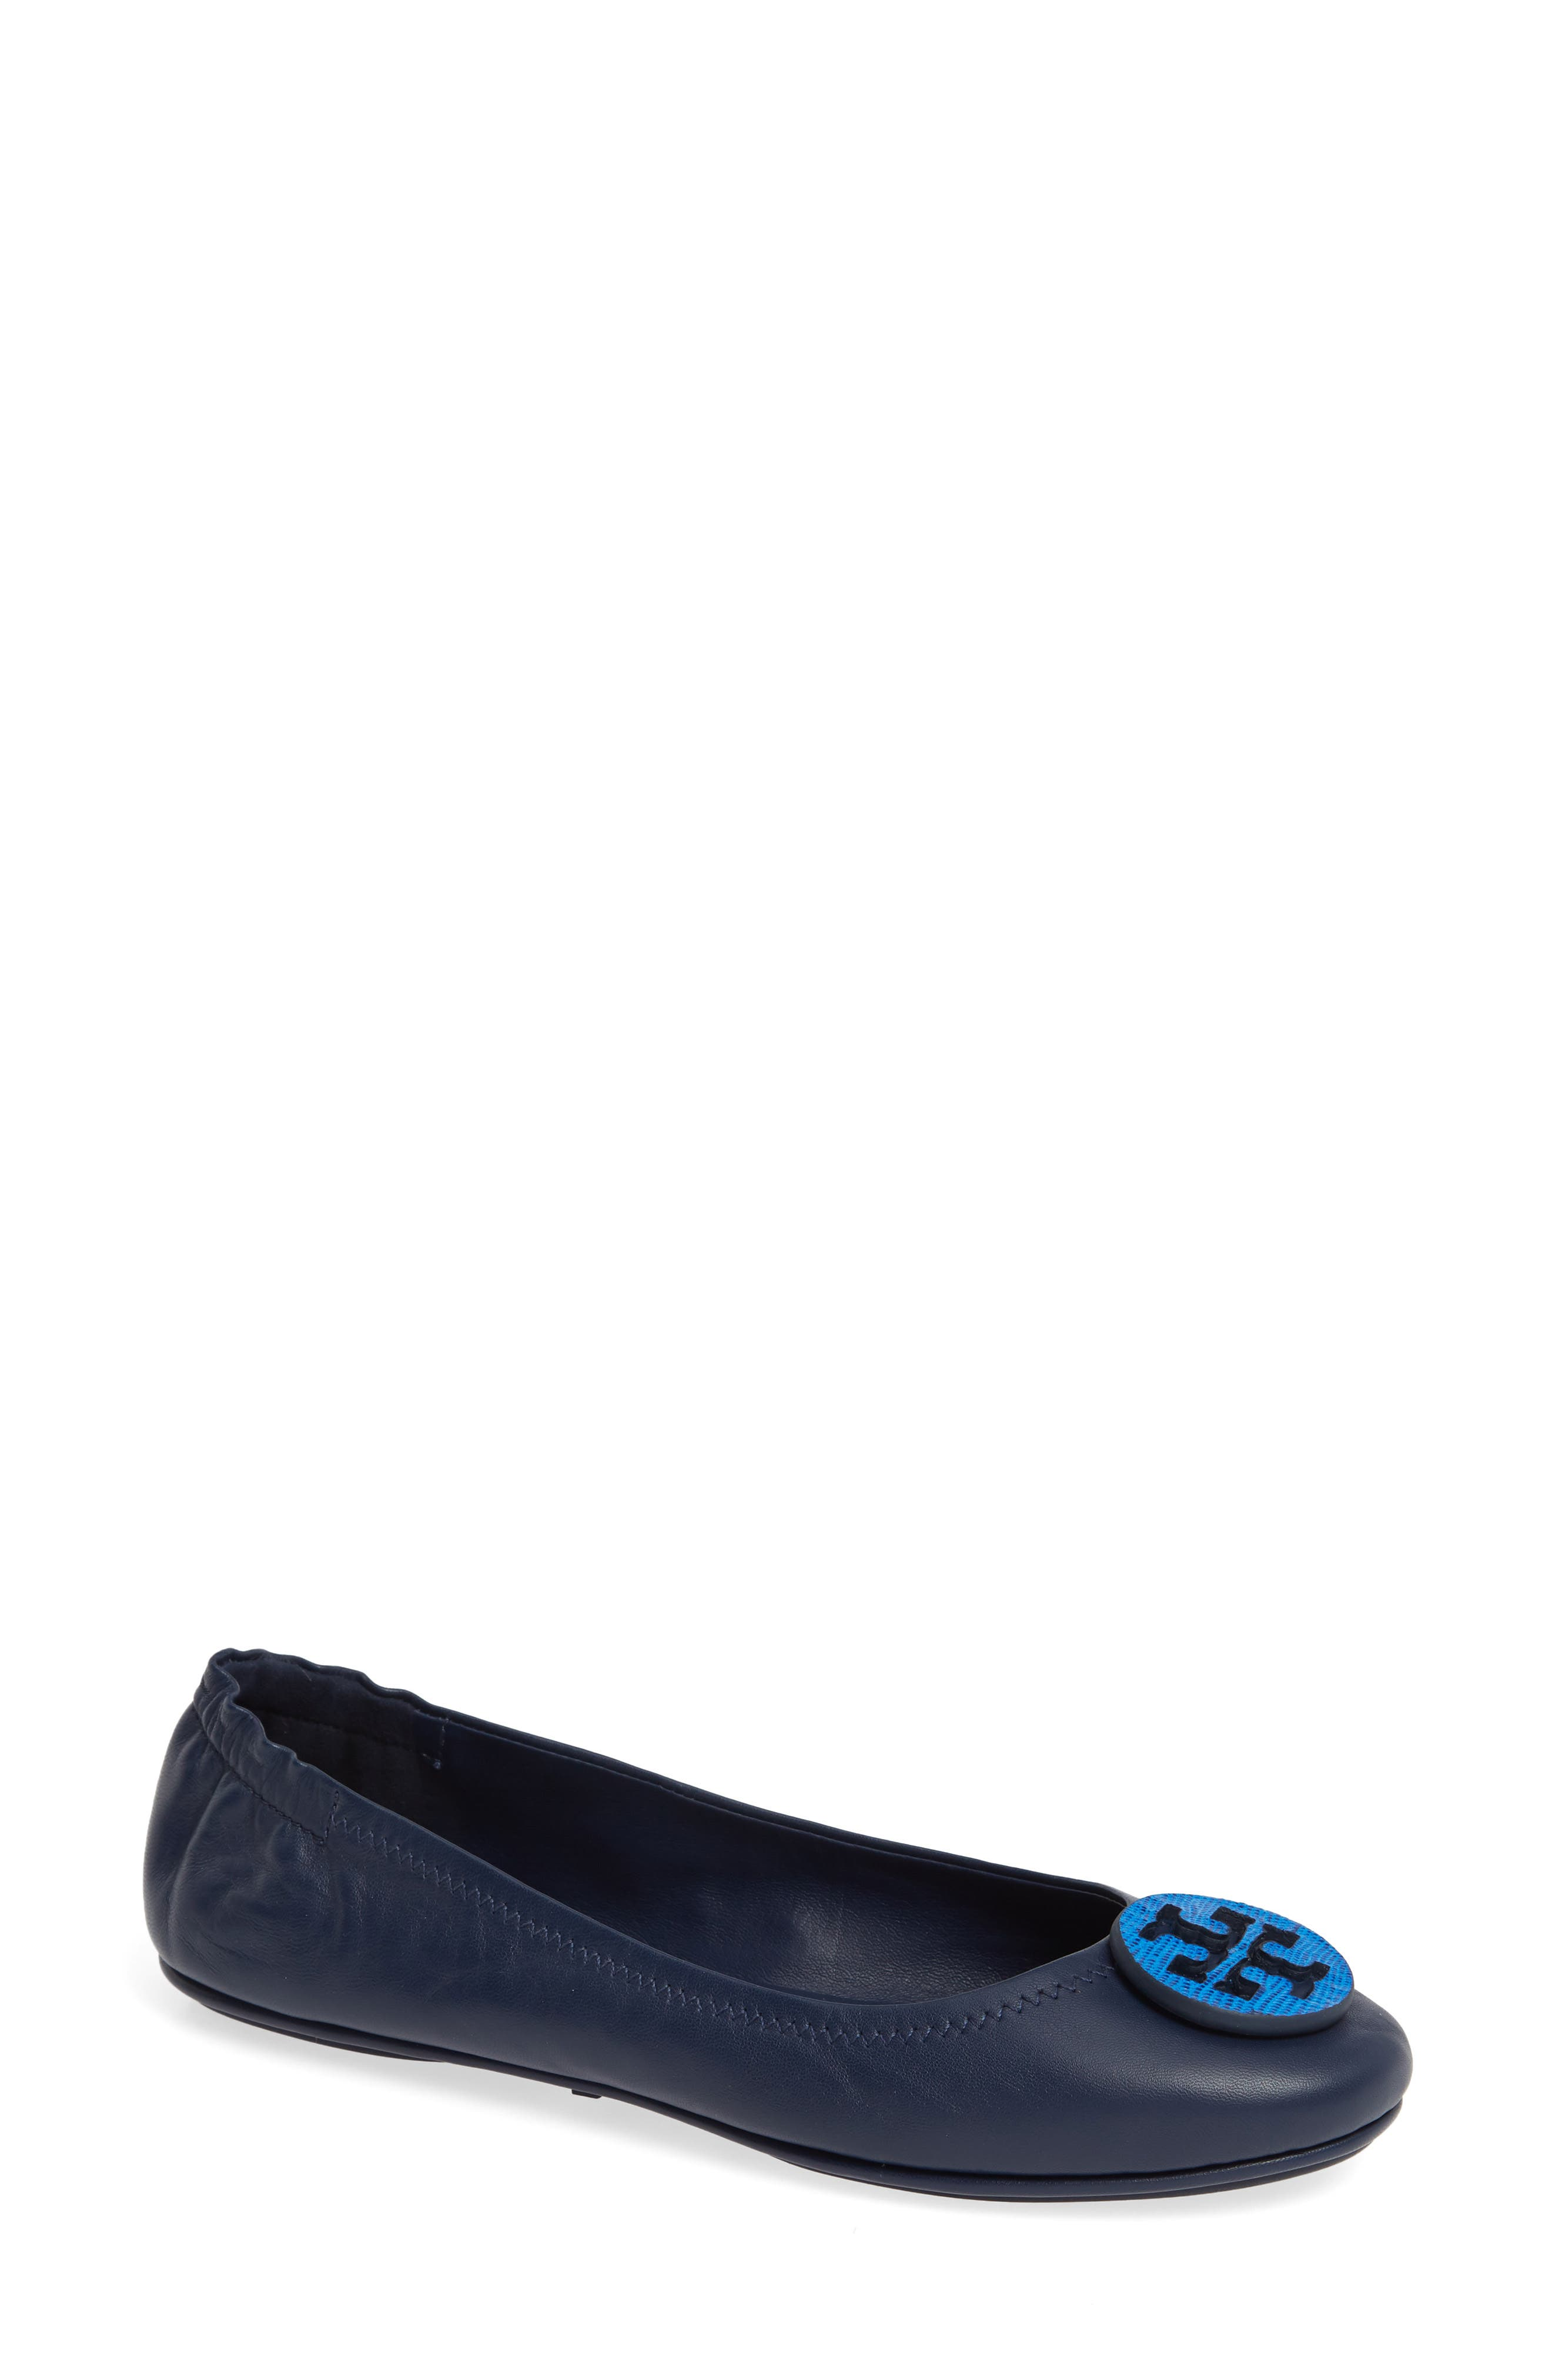 'Minnie' Travel Ballet Flat in Royal Navy/ Tropical Blue